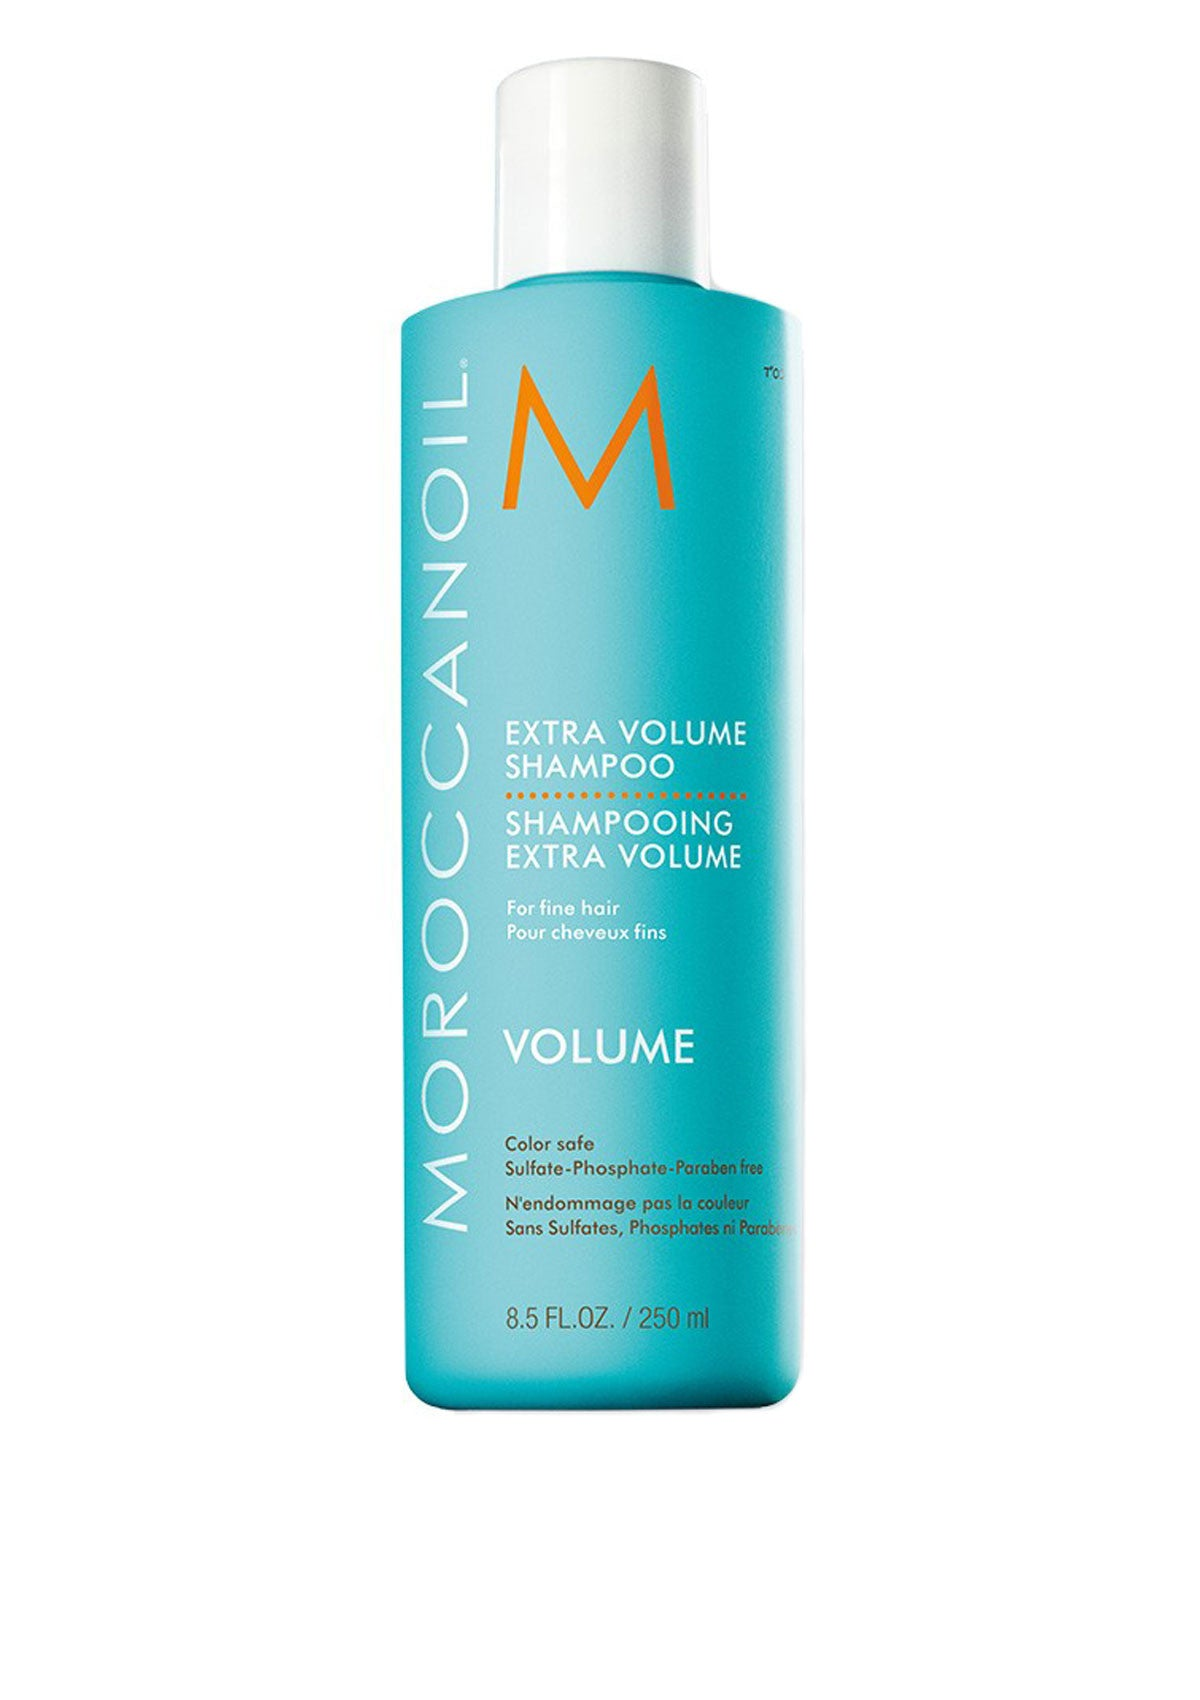 MOROCCANOIL - Extra Volume Shampoo - for fine hair 250ml - DeadSeaShop.co.uk